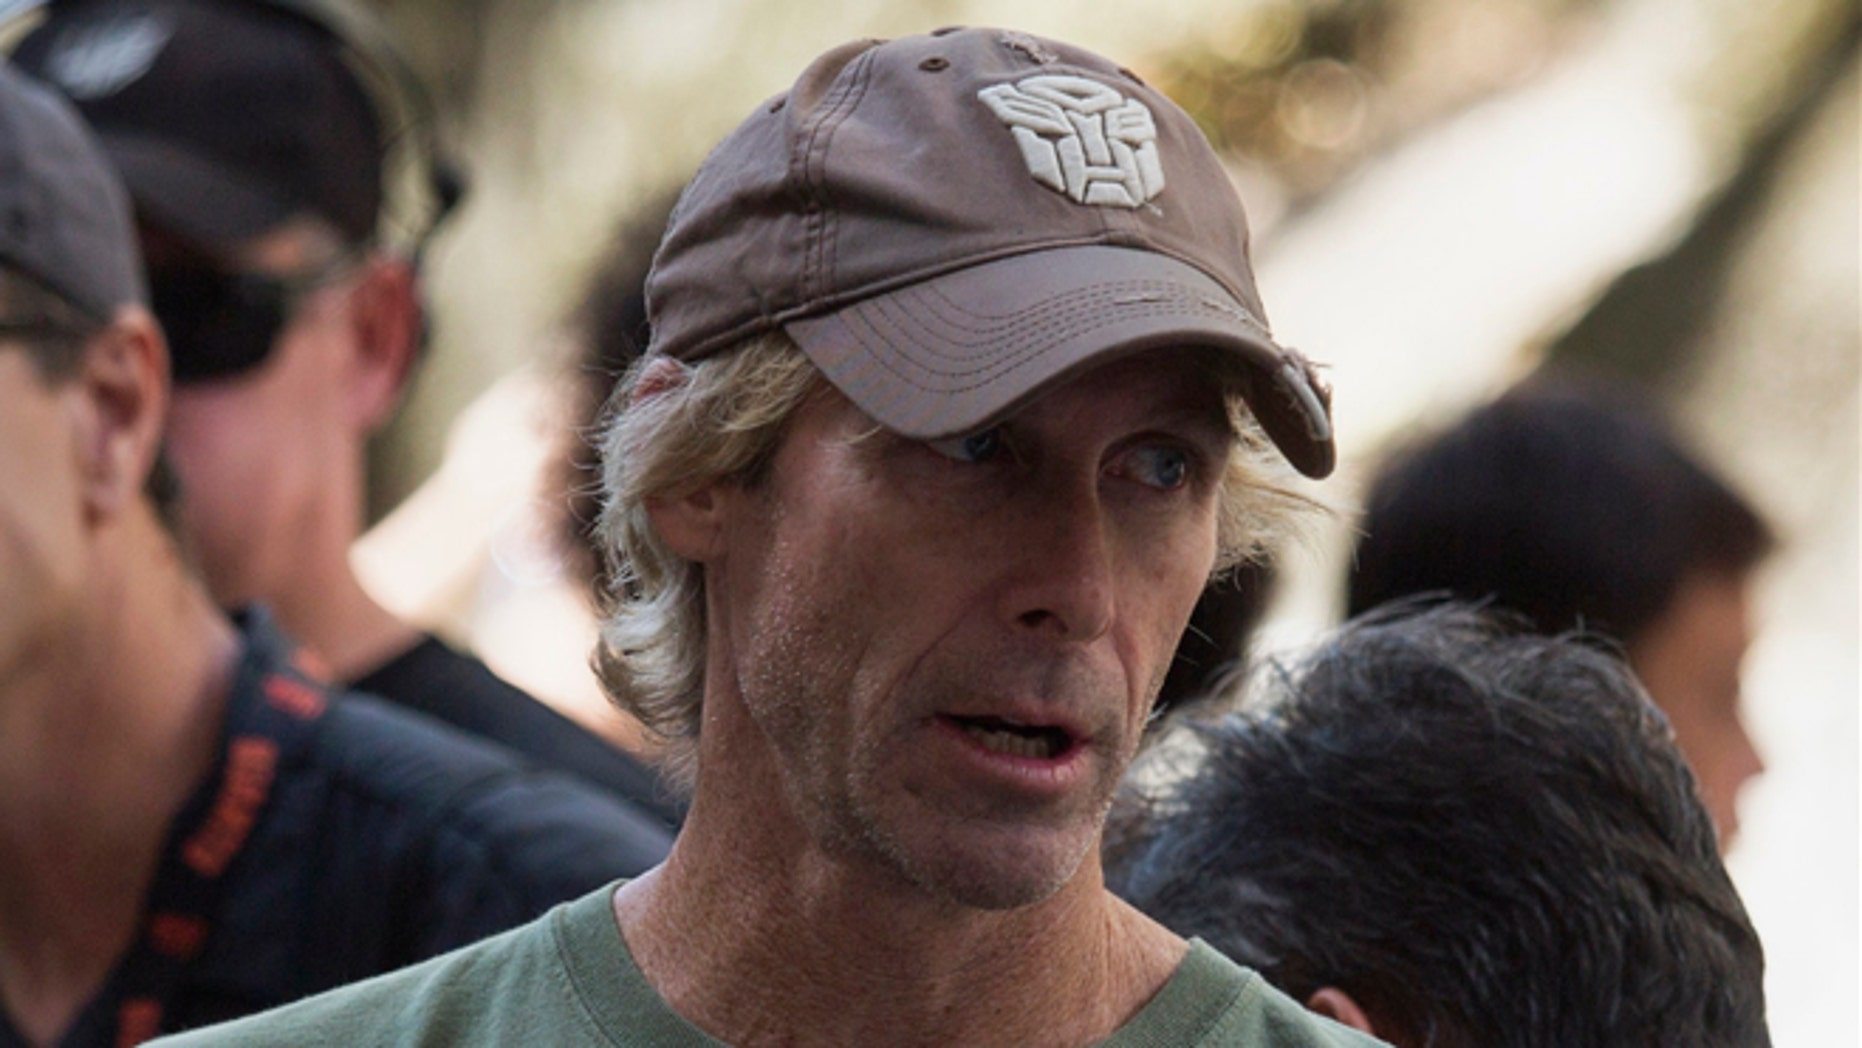 """Oct. 18, 2013: U.S director and producer Michael Bay speaks during the filming of a scene for the movie """"Transformers: Age of Extinction"""" in Hong Kong."""